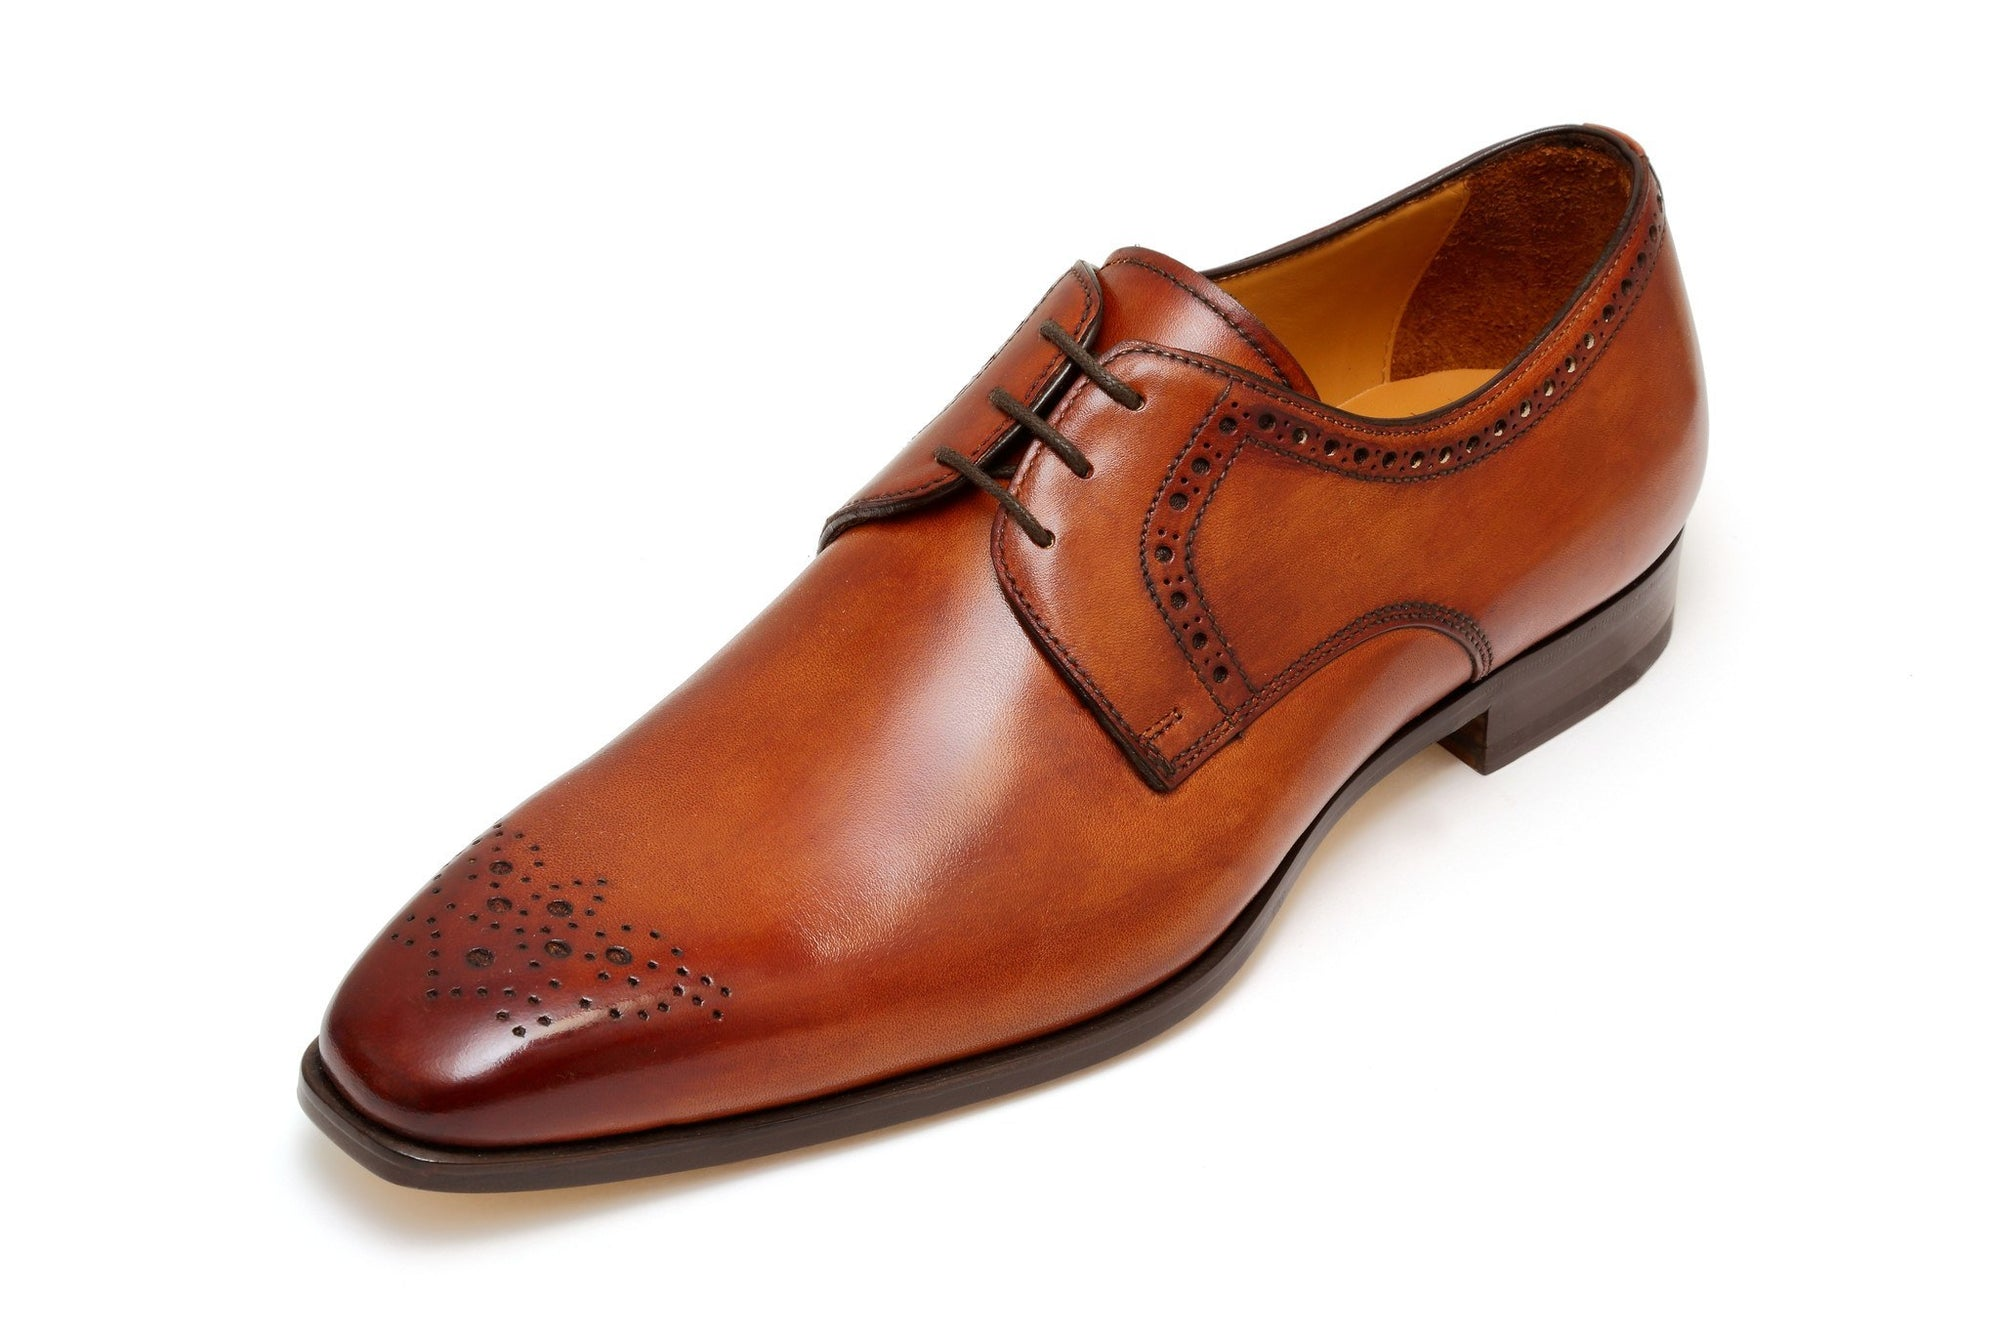 Francesco Benigno Italian Derby Shoes - Honey - Ninostyle